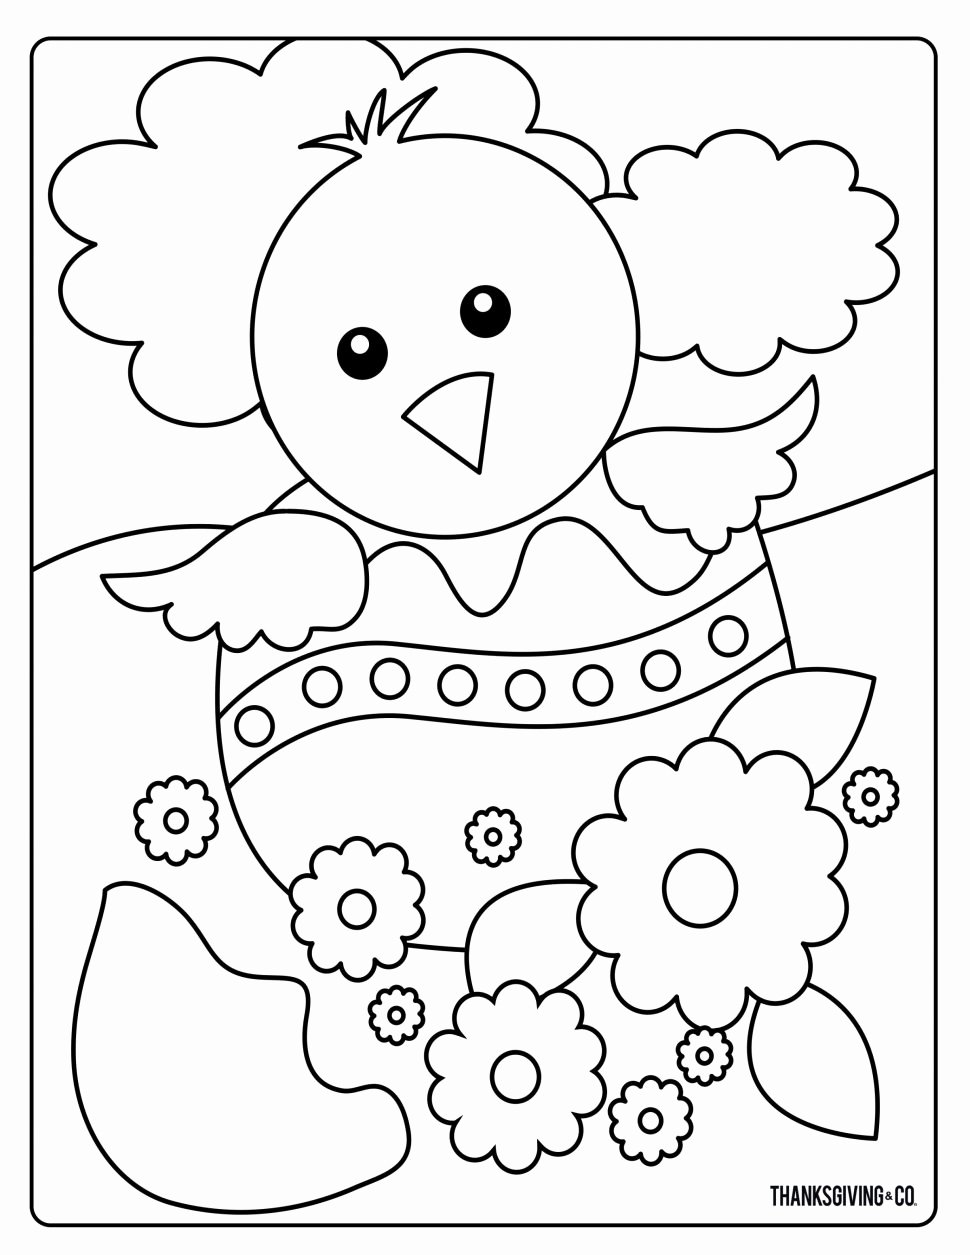 Worksheets for Preschoolers Colouring Ideas Worksheet Phenomenal Activities Sheets for Preschoolers